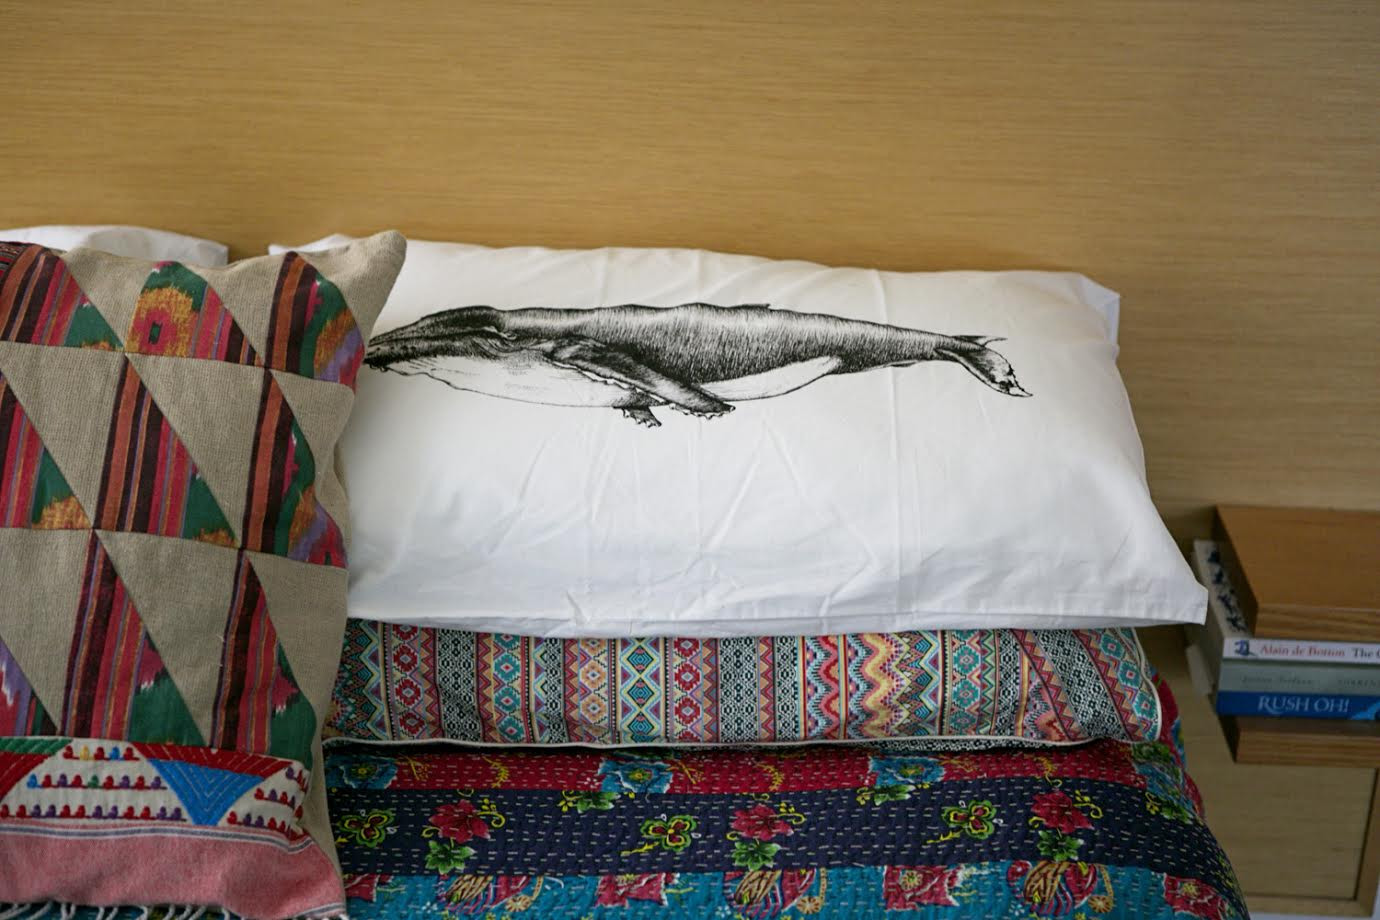 Bedcover Colorful A Creative Home..with Artist Michelle Fleur in Perth, Australia // Surelysimple.com